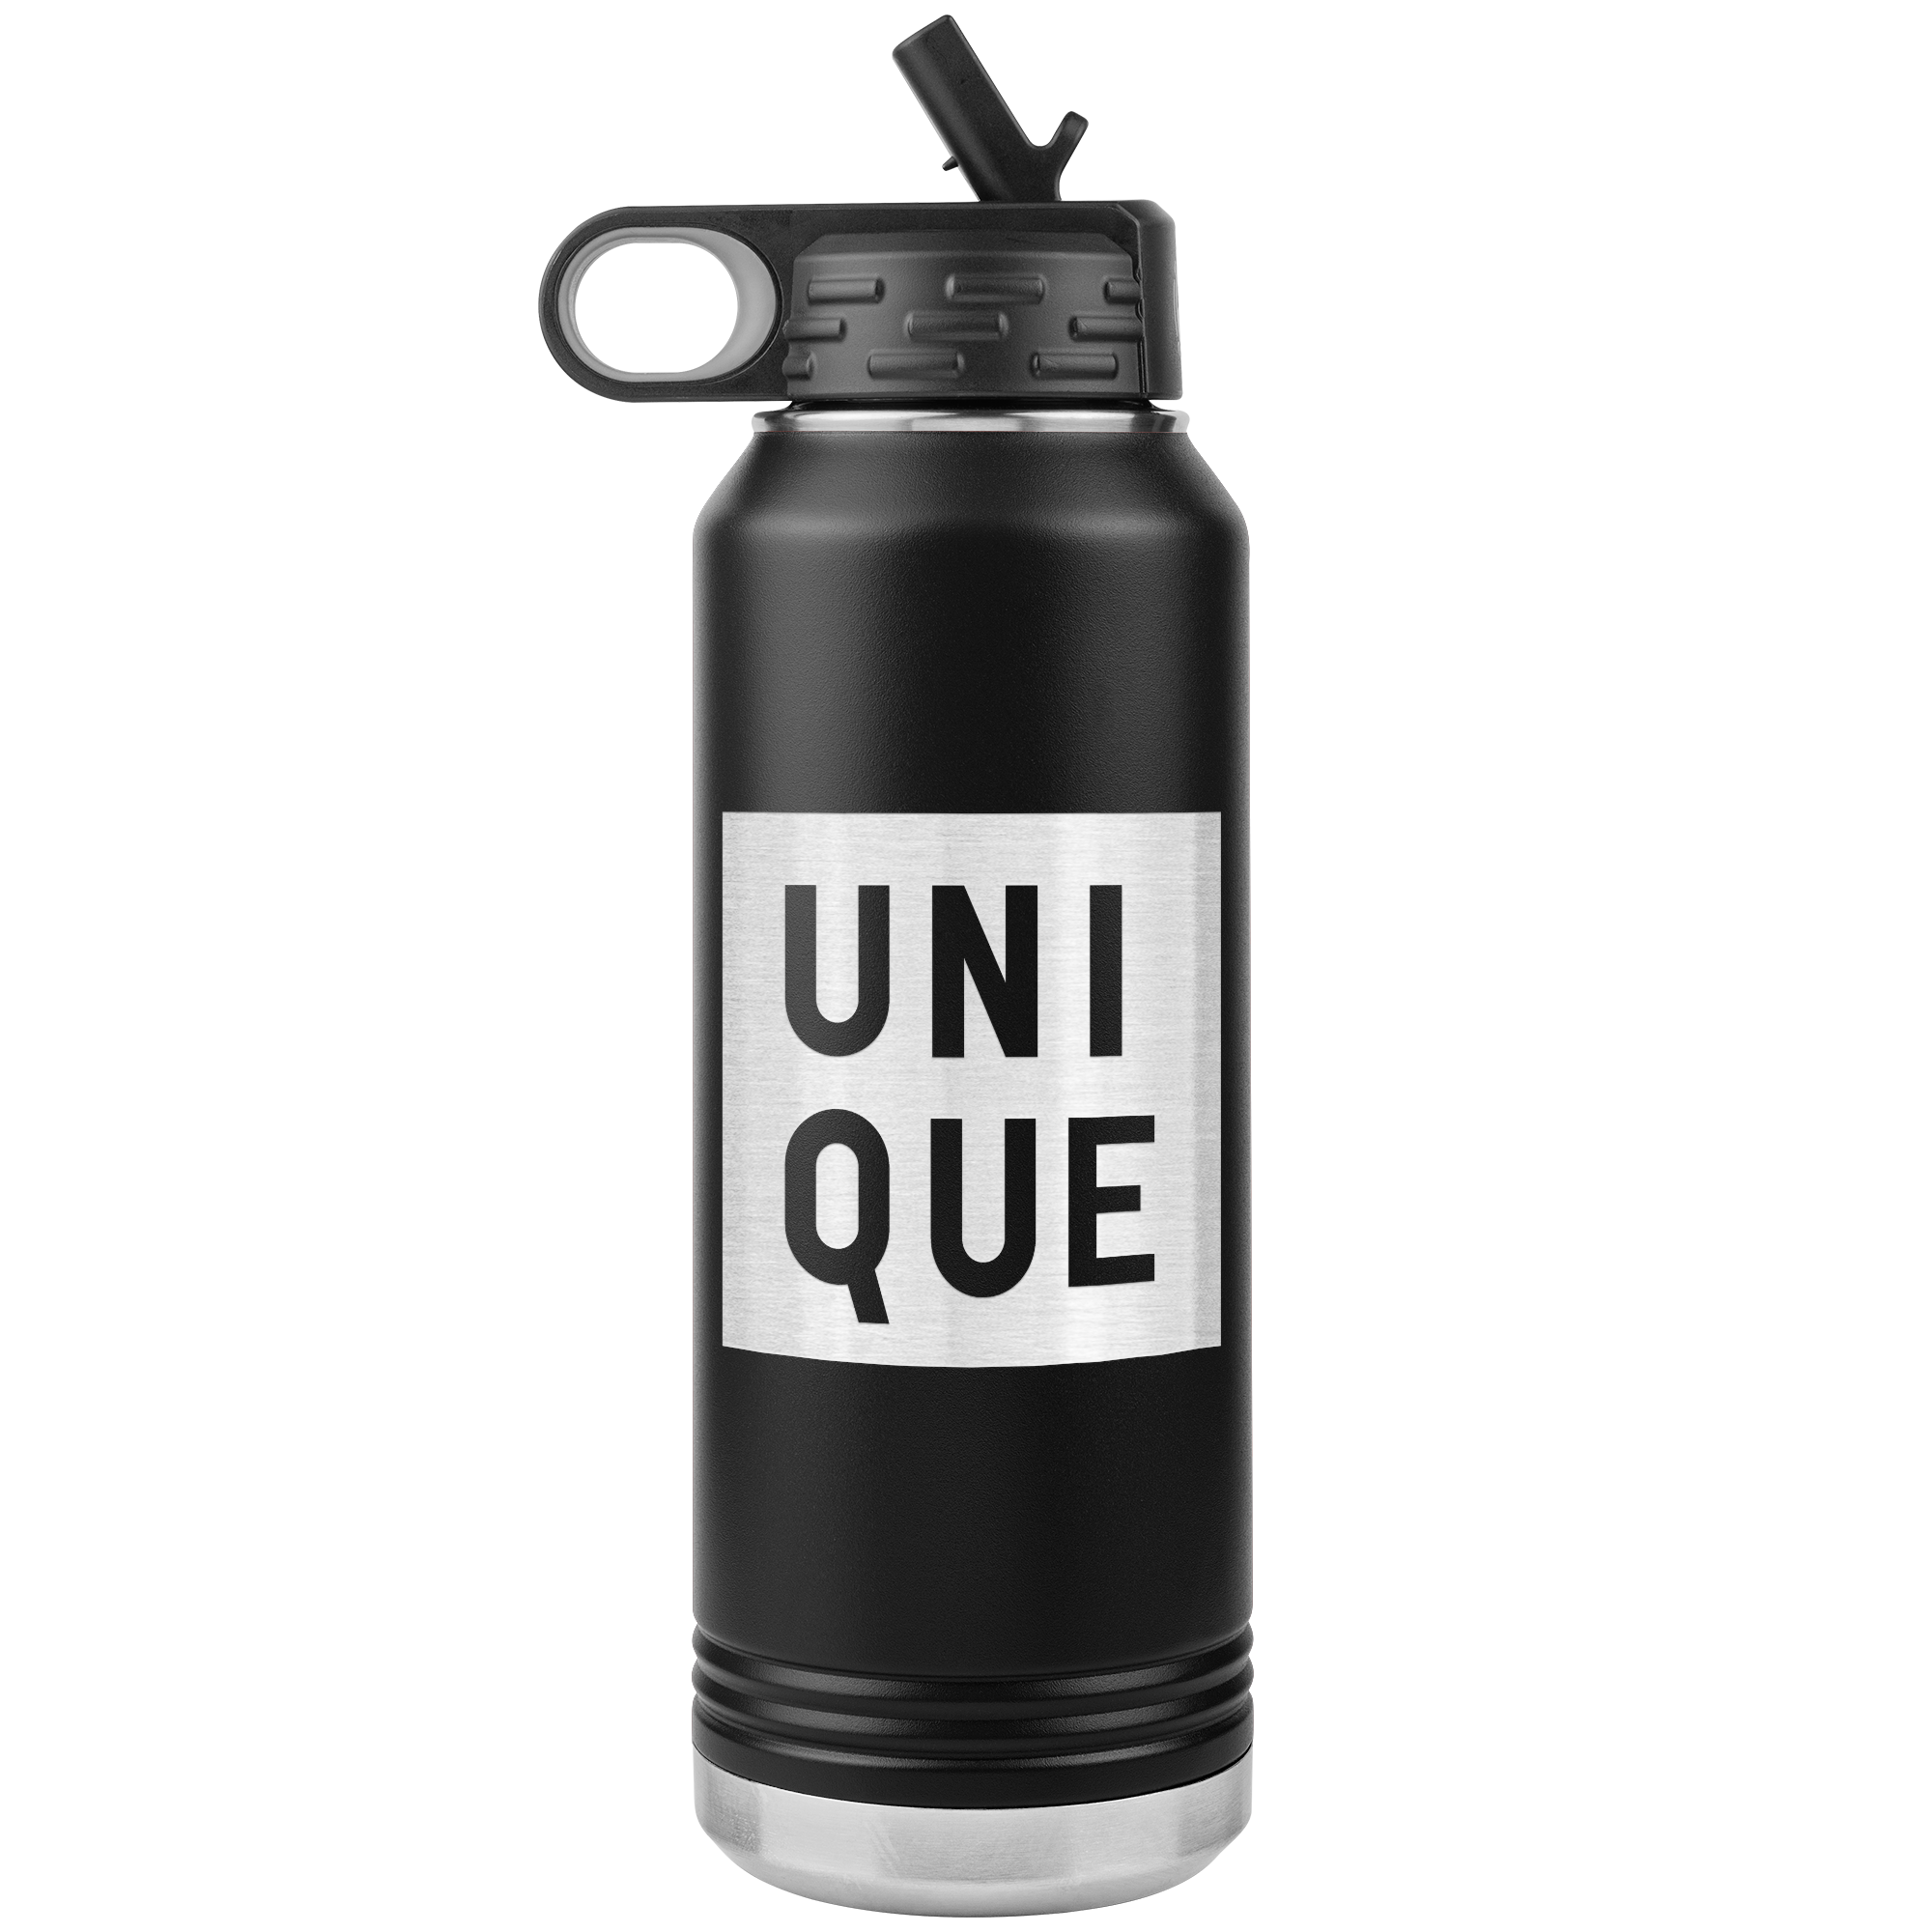 Unique (32oz Stainless Steel Tumbler)